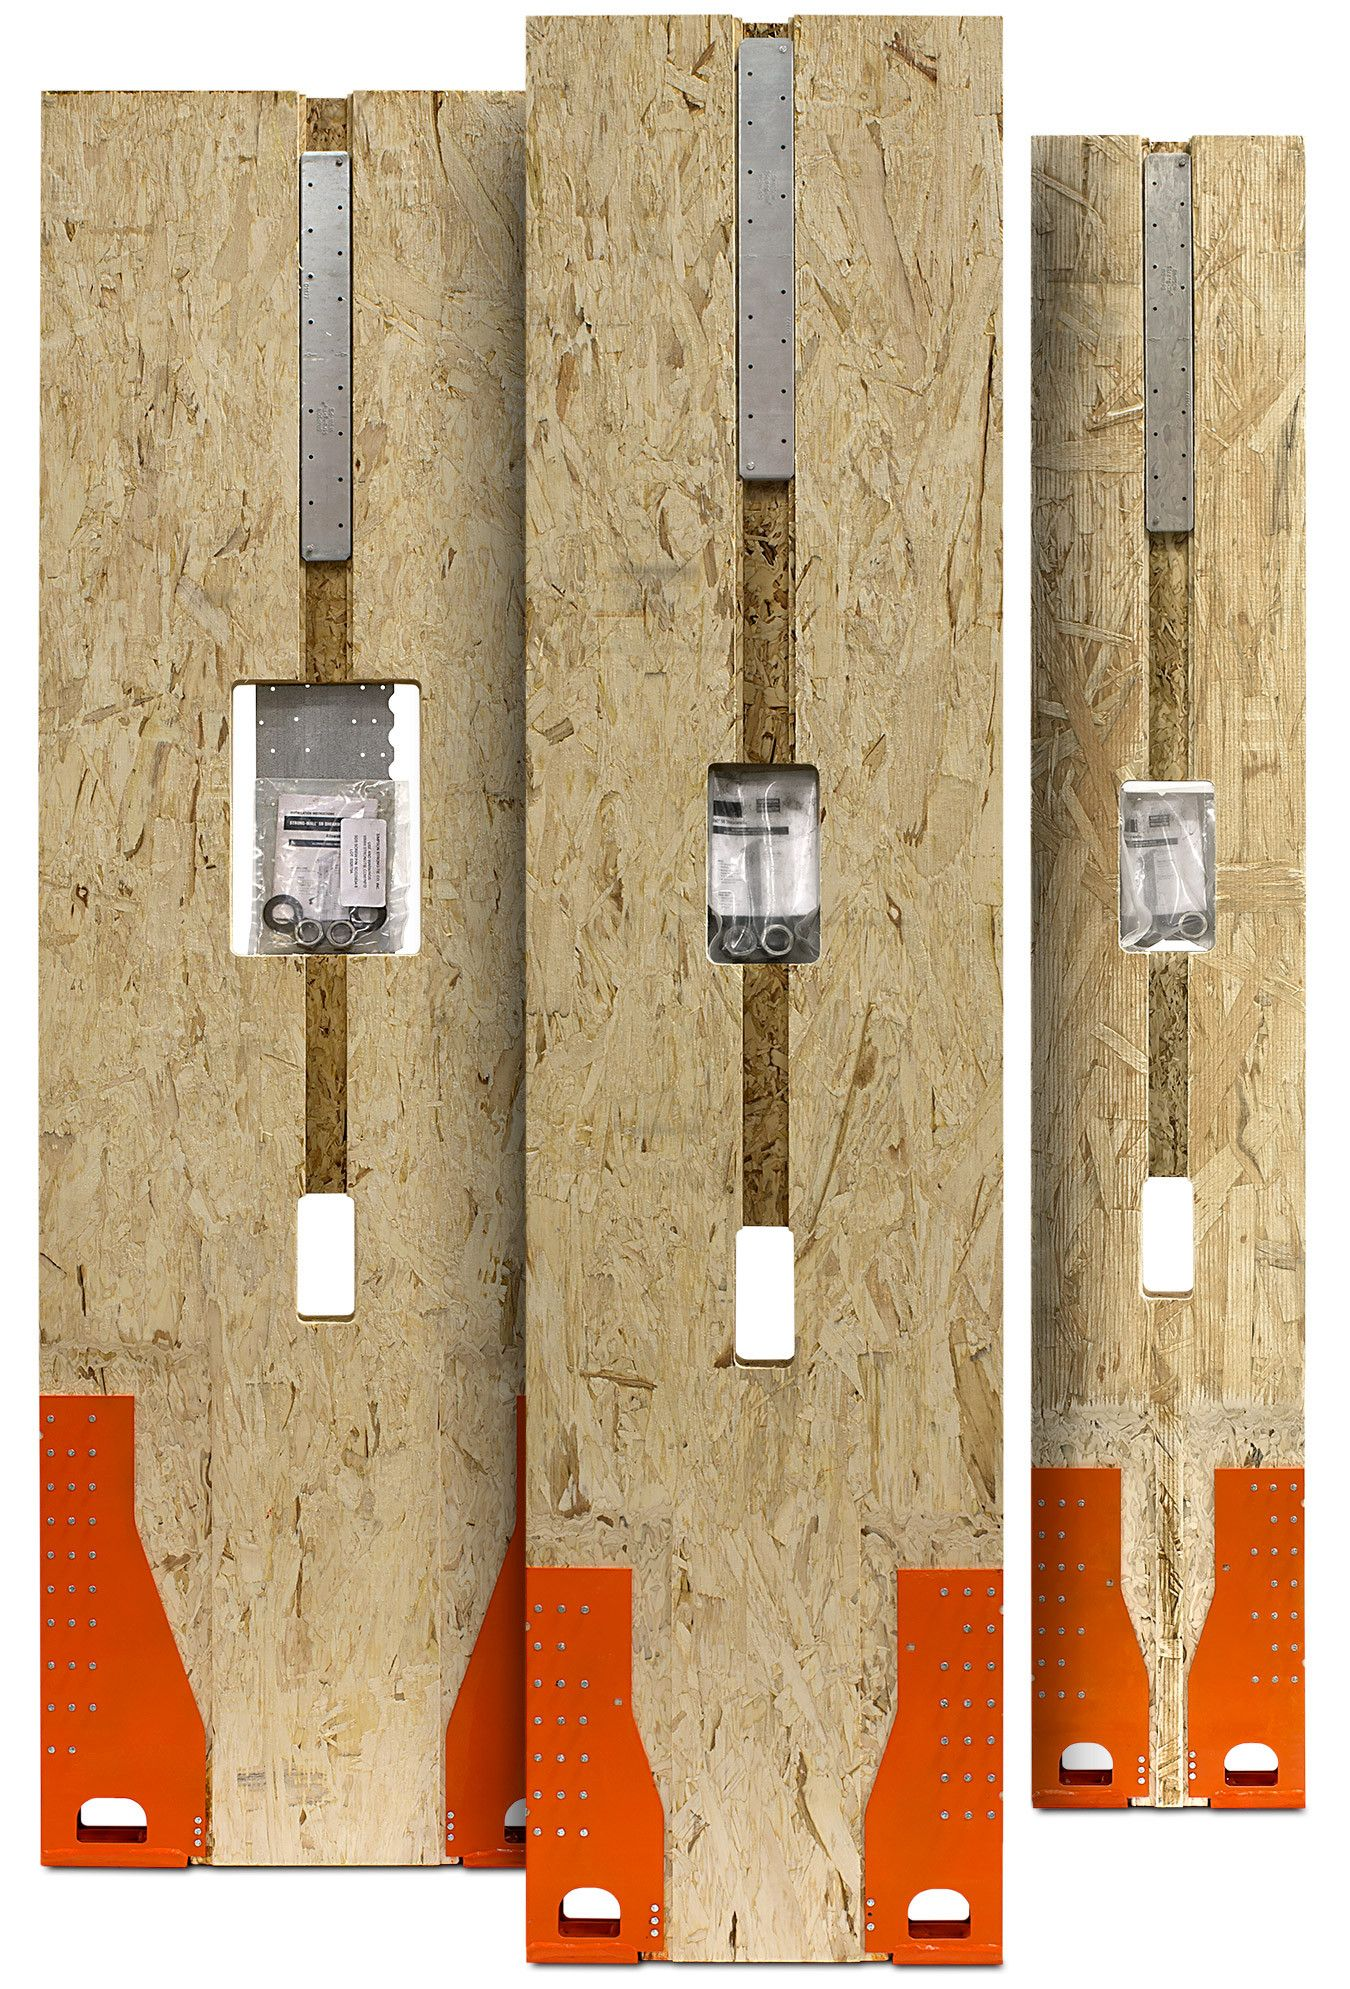 Wood Shearwalls Product Kit Back - WSW-back-3walls-kit